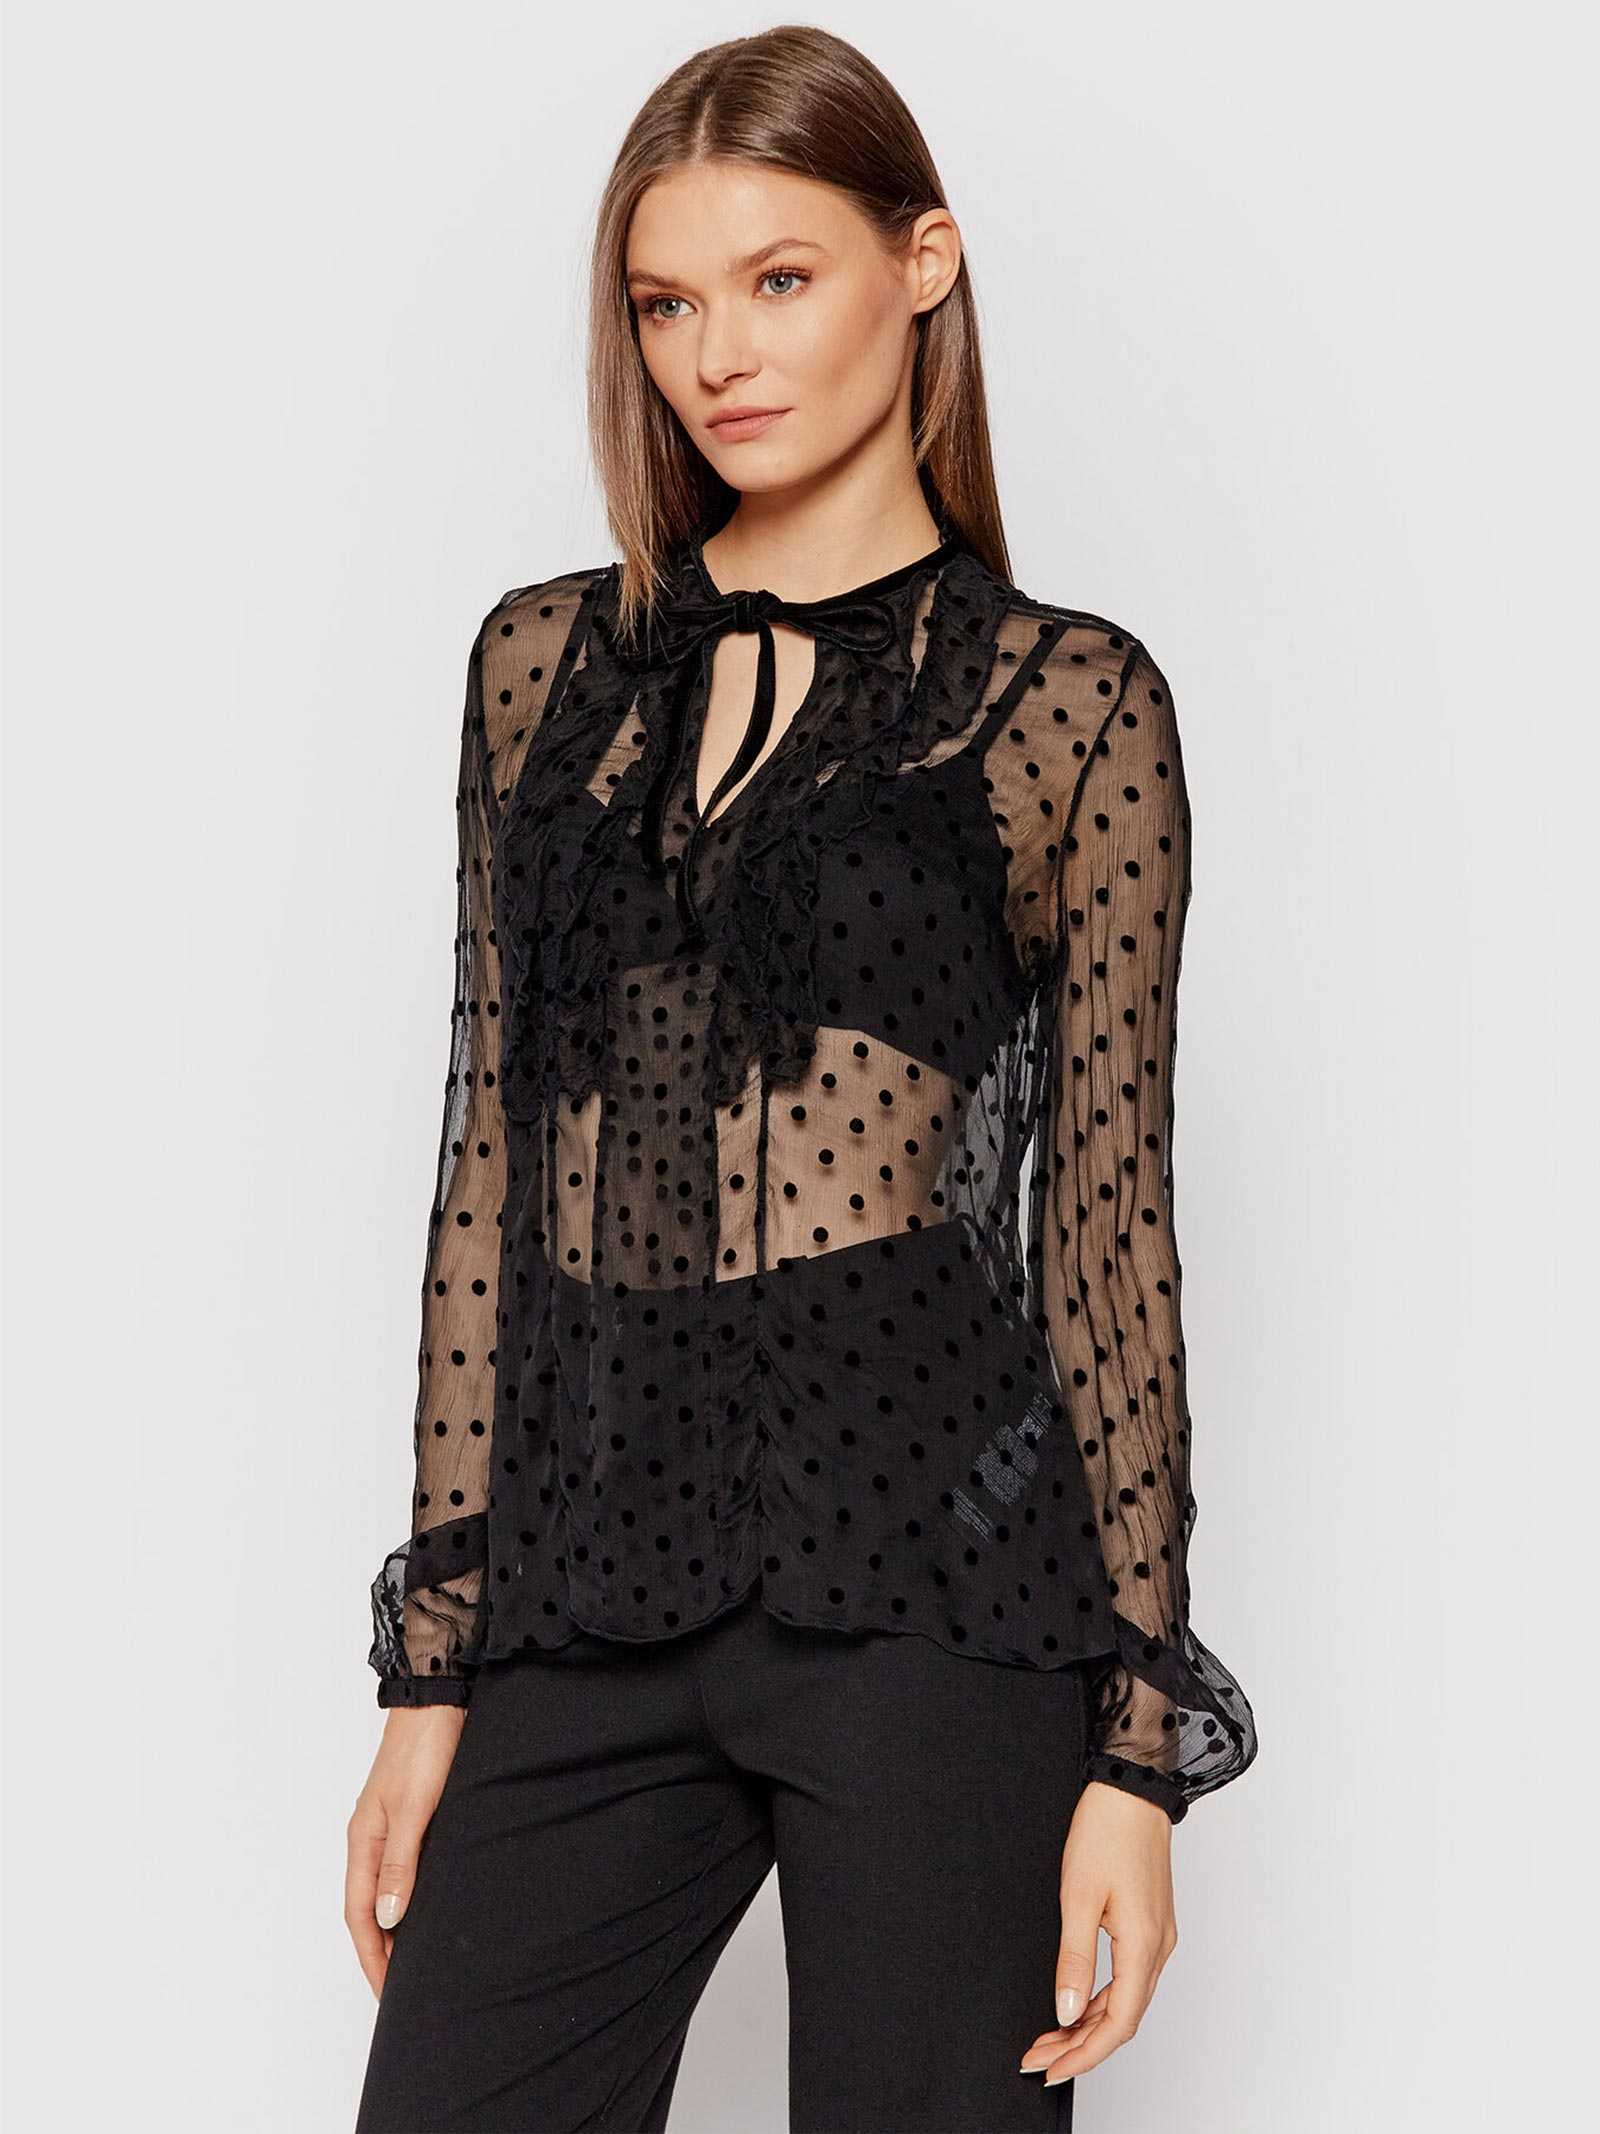 Lucilla blouse GUESS | Blouses | W1YH97WE0Y0P9RL